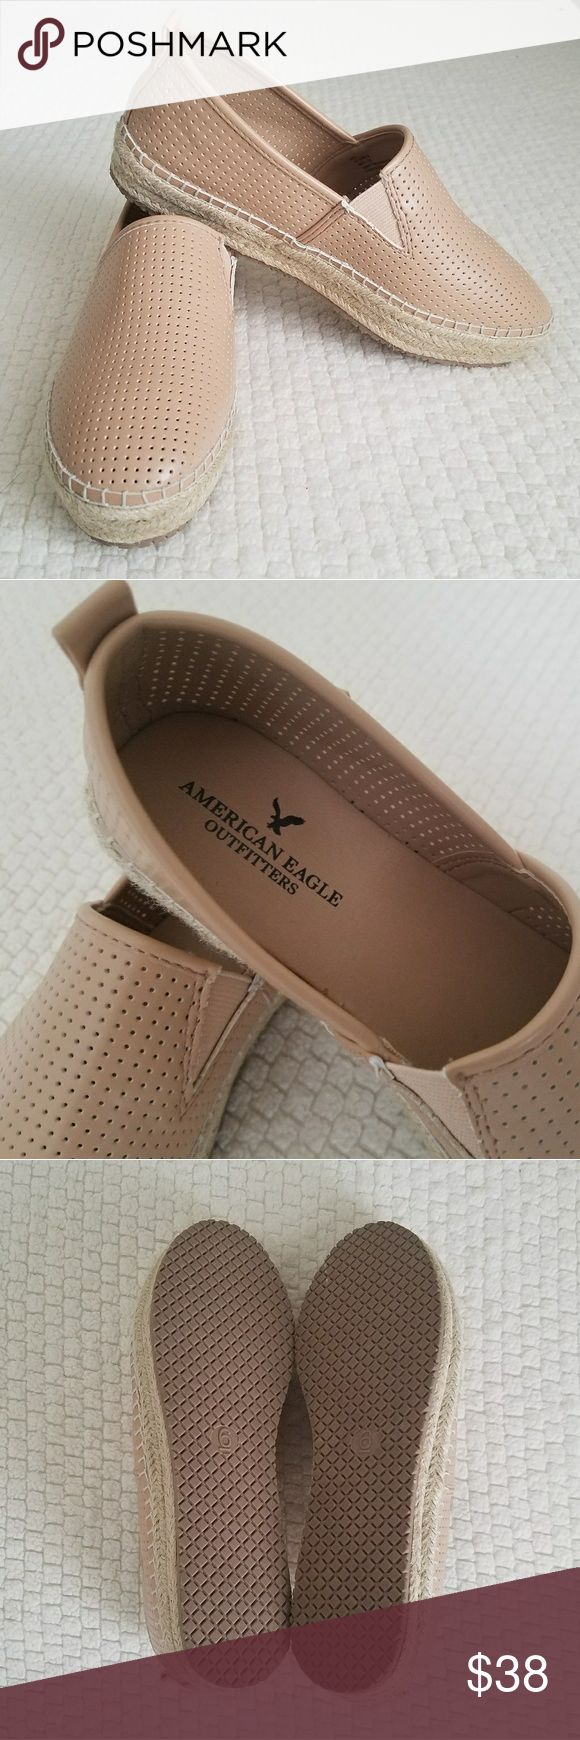 American Eagle Blush Pink Espadrilles Slip Ons True size 6! New - they don't fit me, thought I could squeeze in as a 6.5 but too snug.   Gorgeous blush pink color. No box. American Eagle Outfitters Shoes Espadrilles